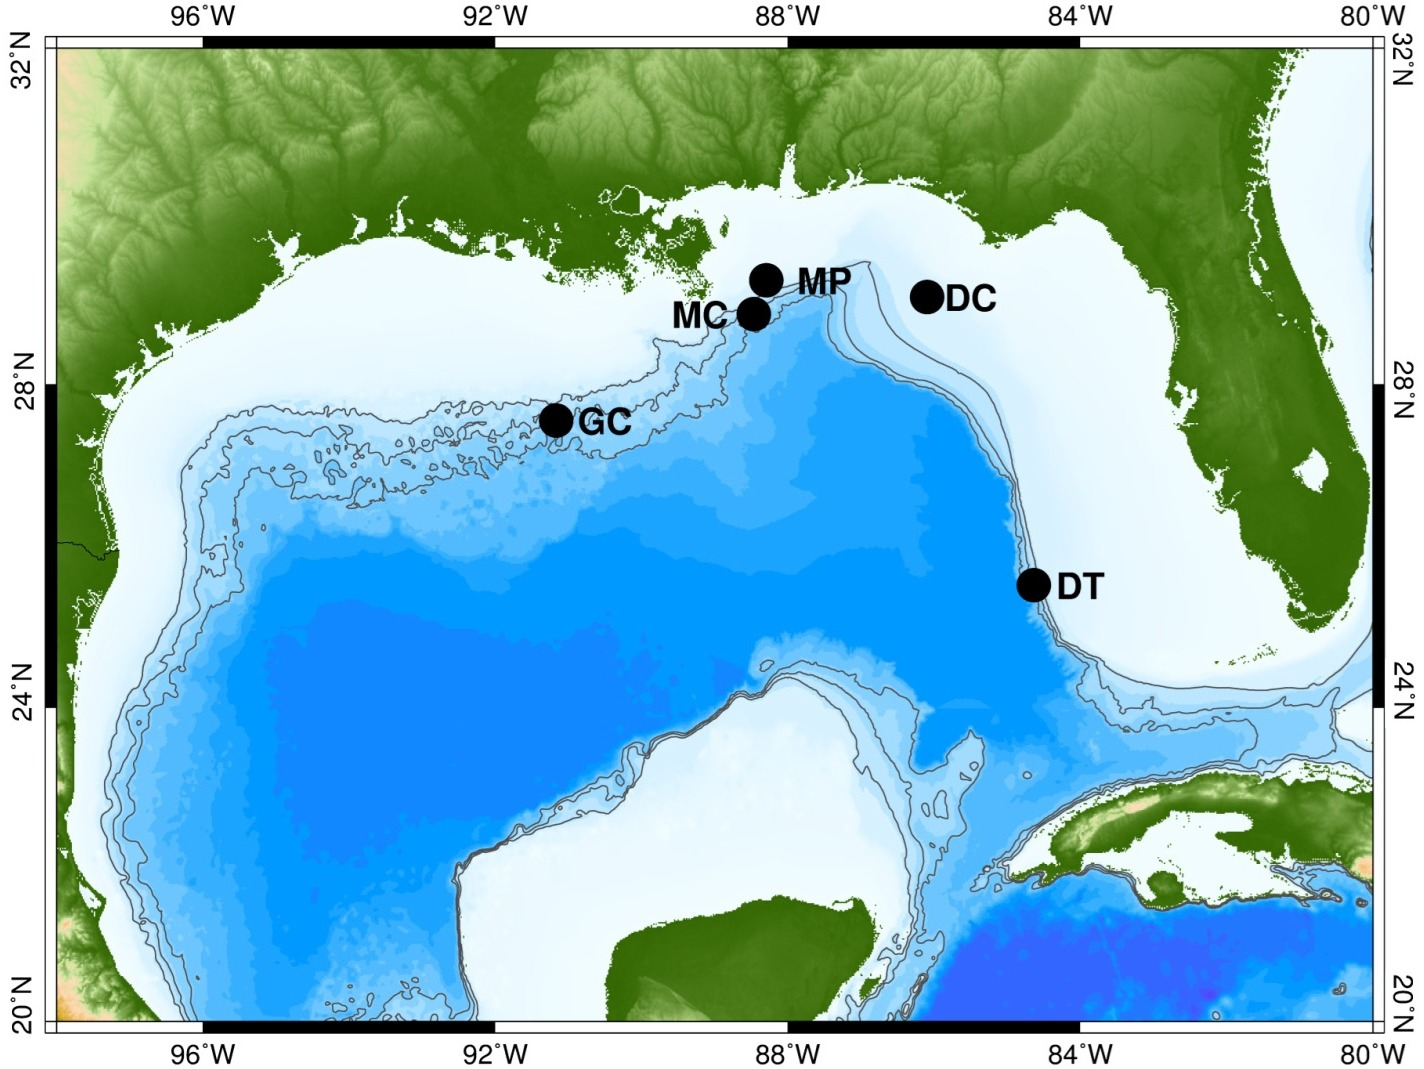 ocean-floor recording sites